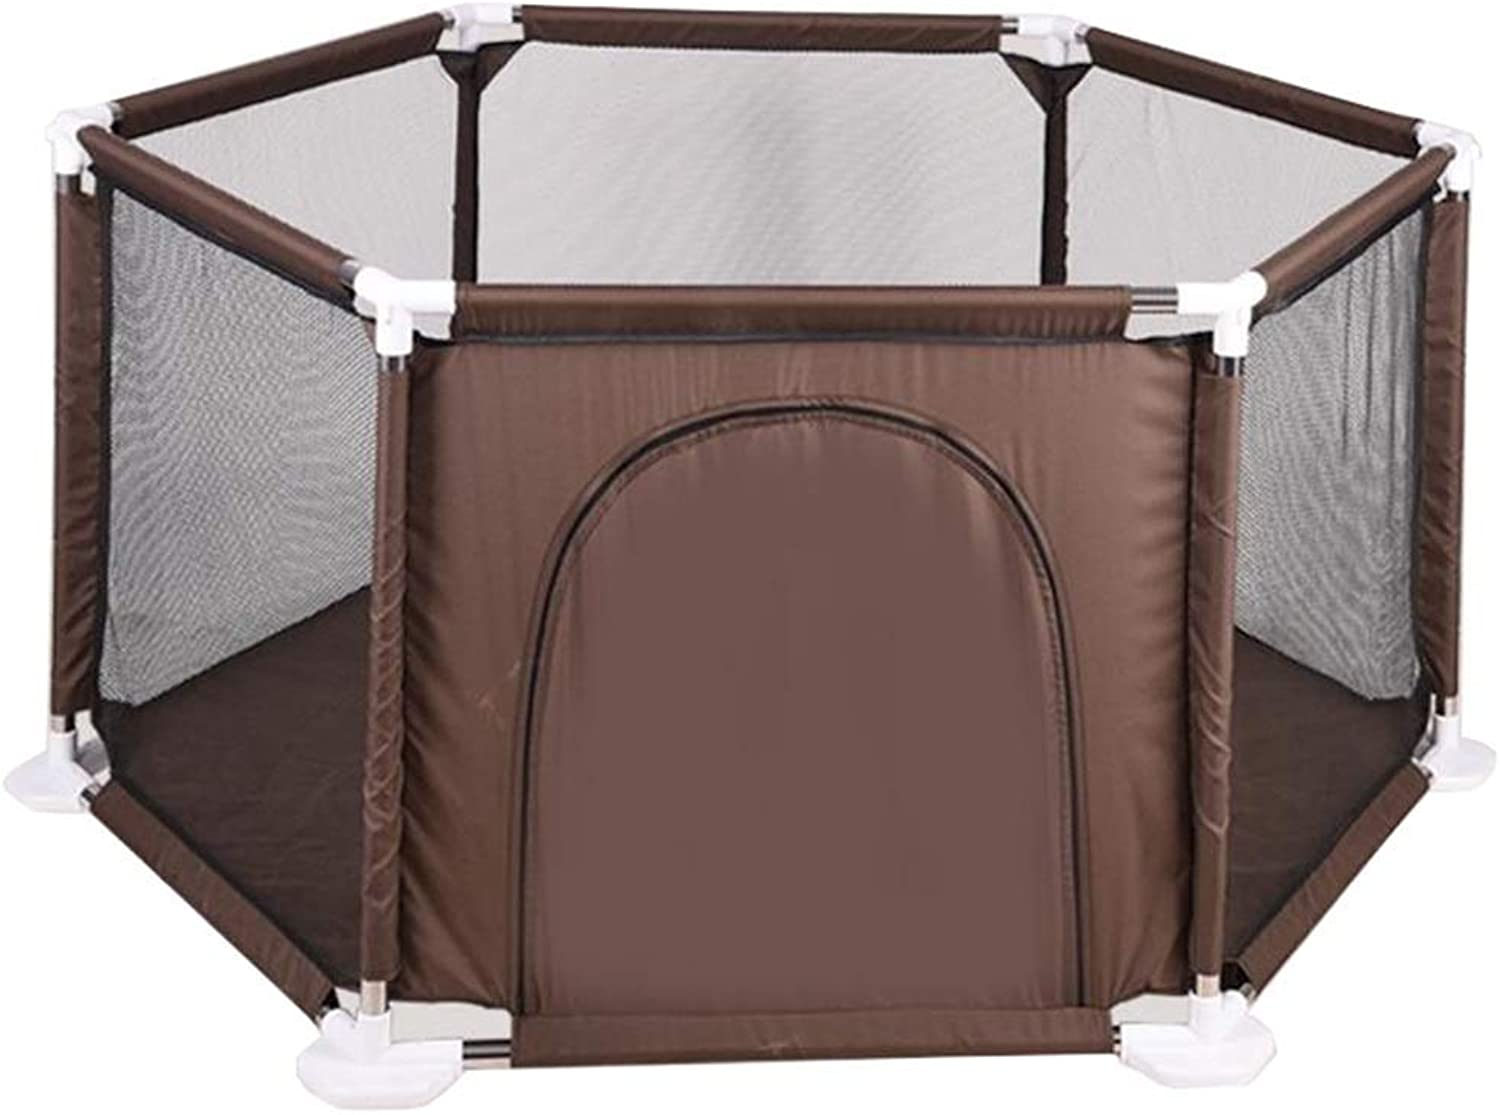 YINER Baby Fence, Detachable Game Fence Indoor and Outdoor Games Breathable Grid Baby Toddler Fence 65cm (color   Brown)